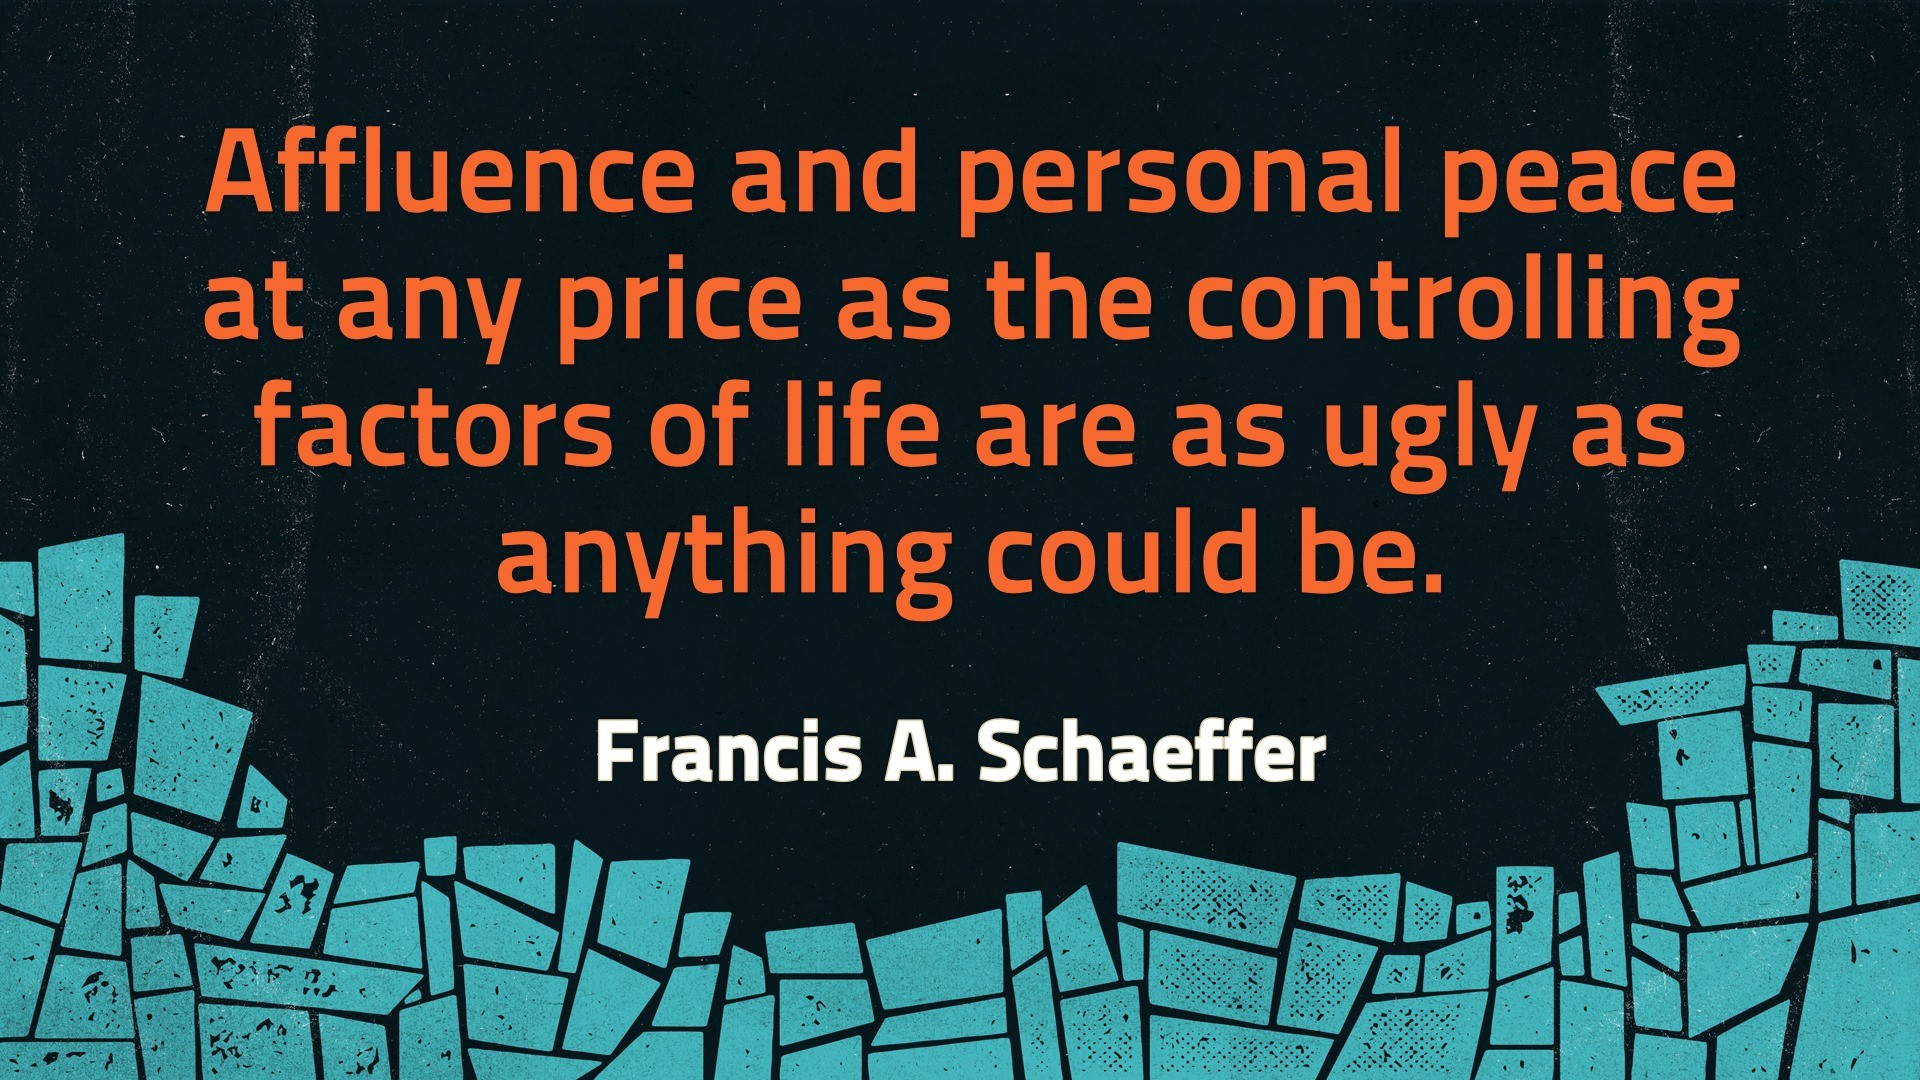 Schaeffer on affluence